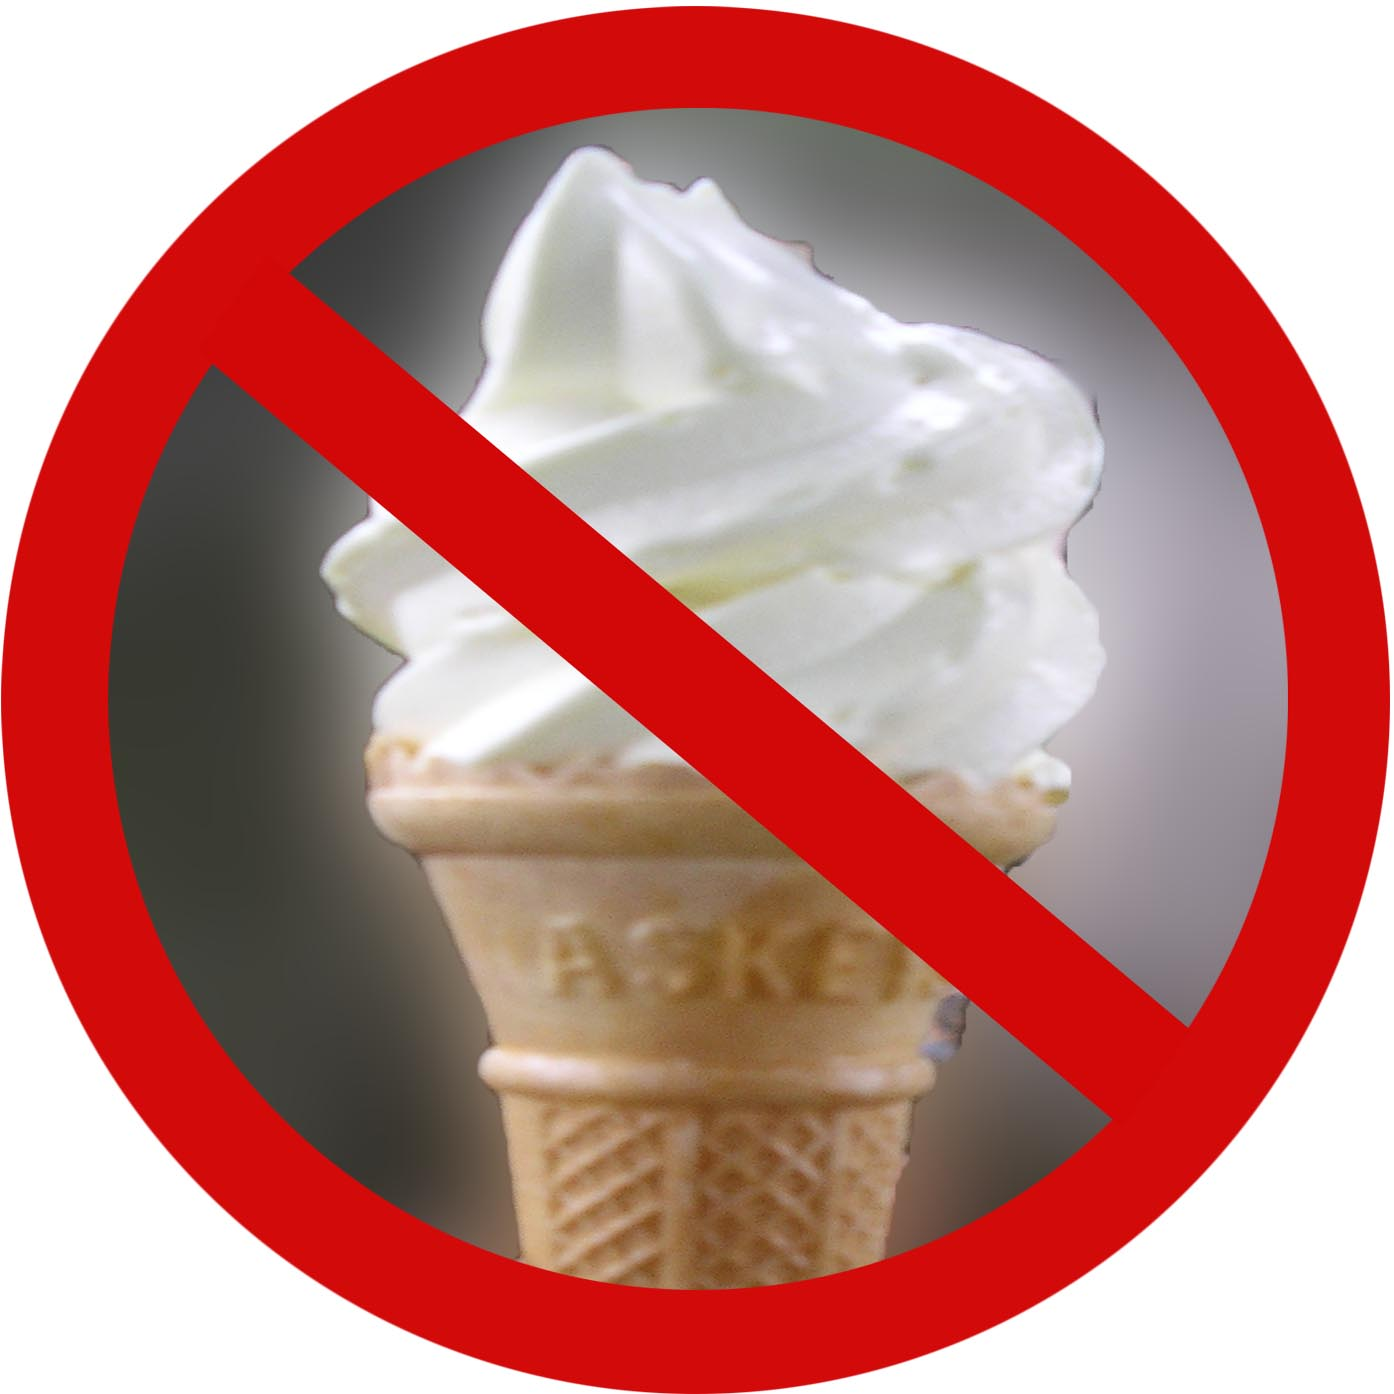 Photo of prohibited ice cream cone